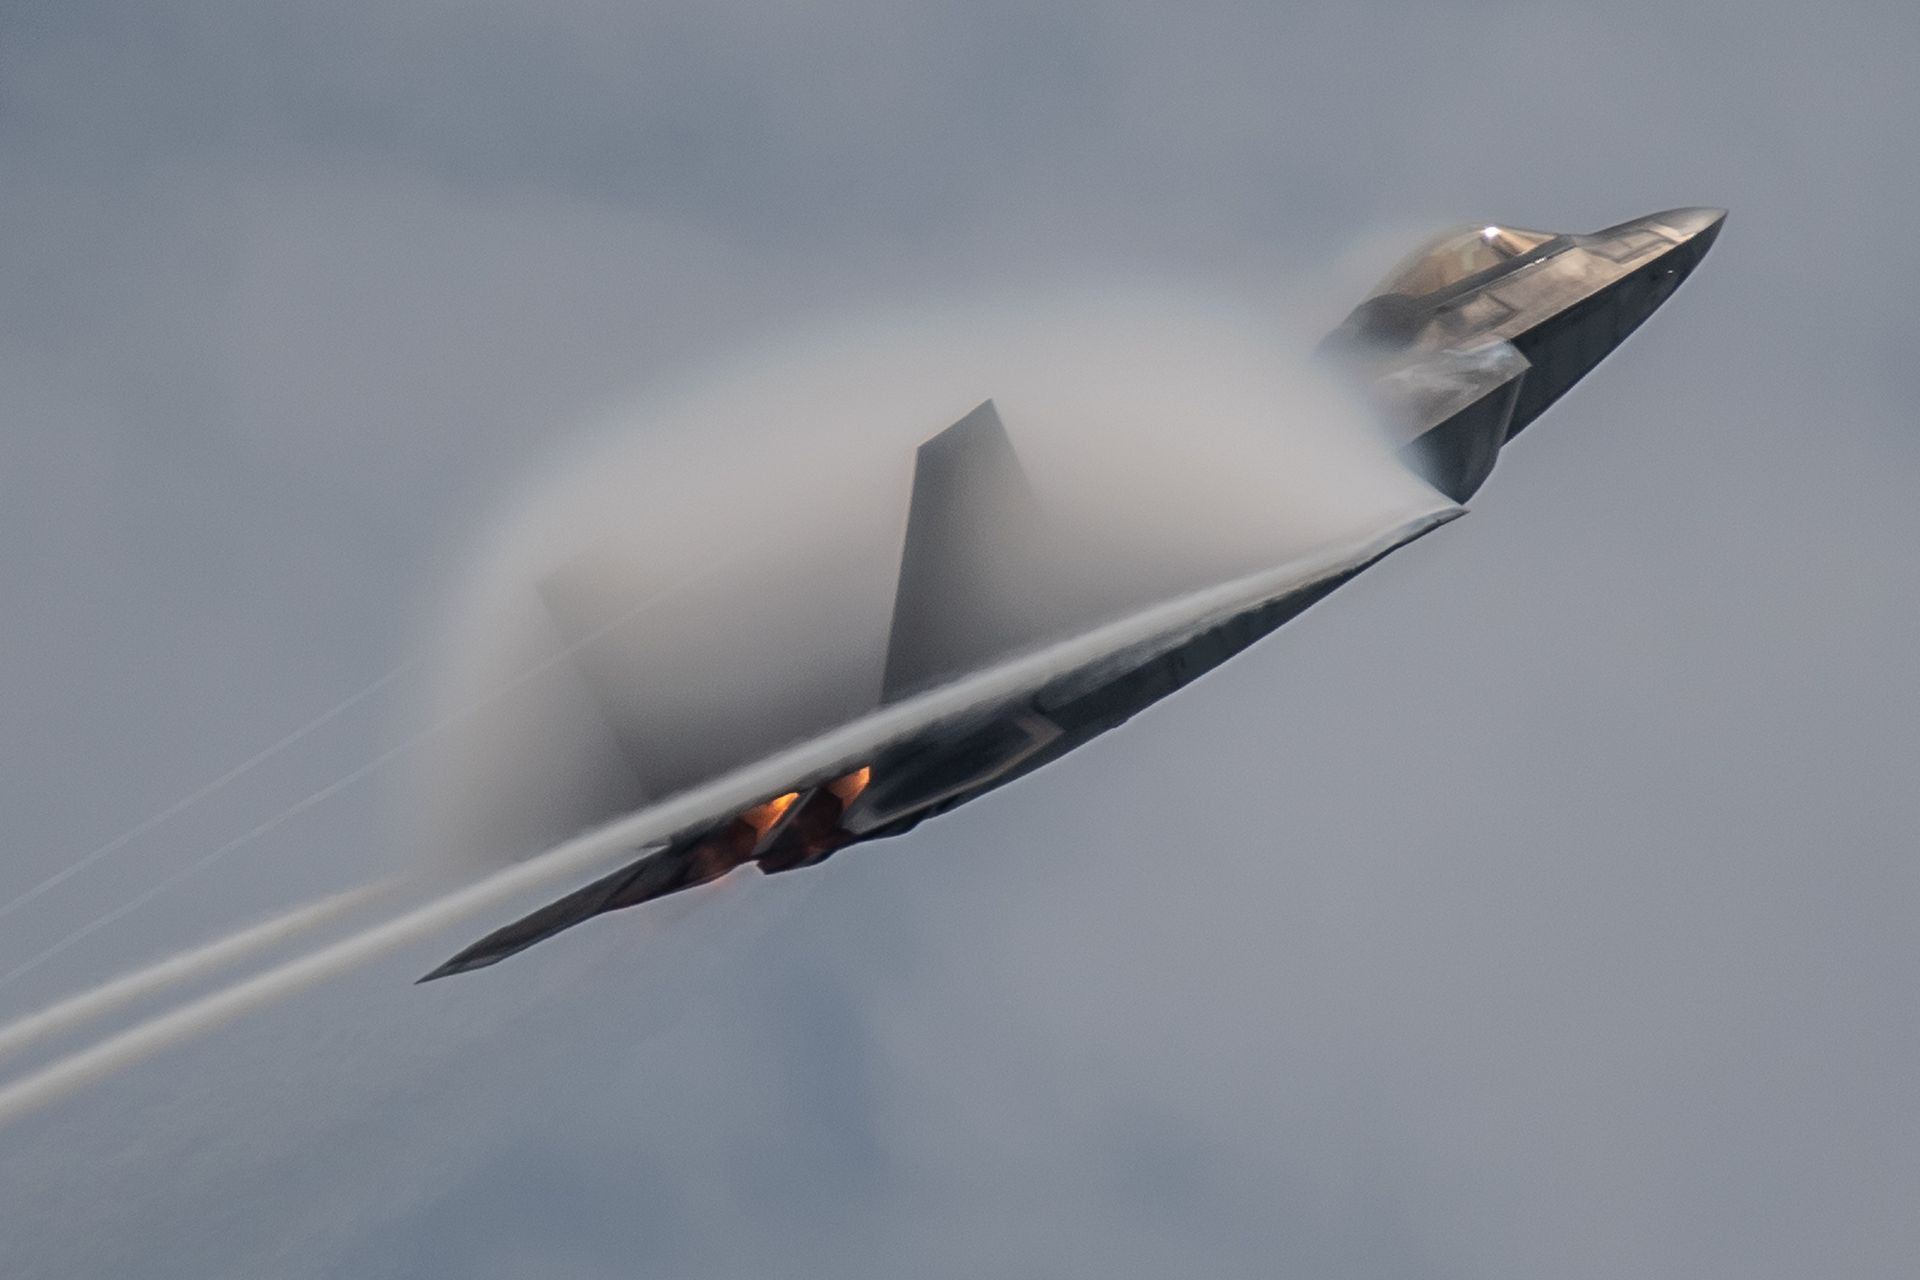 F-22 at the Singapore Airshow 2020